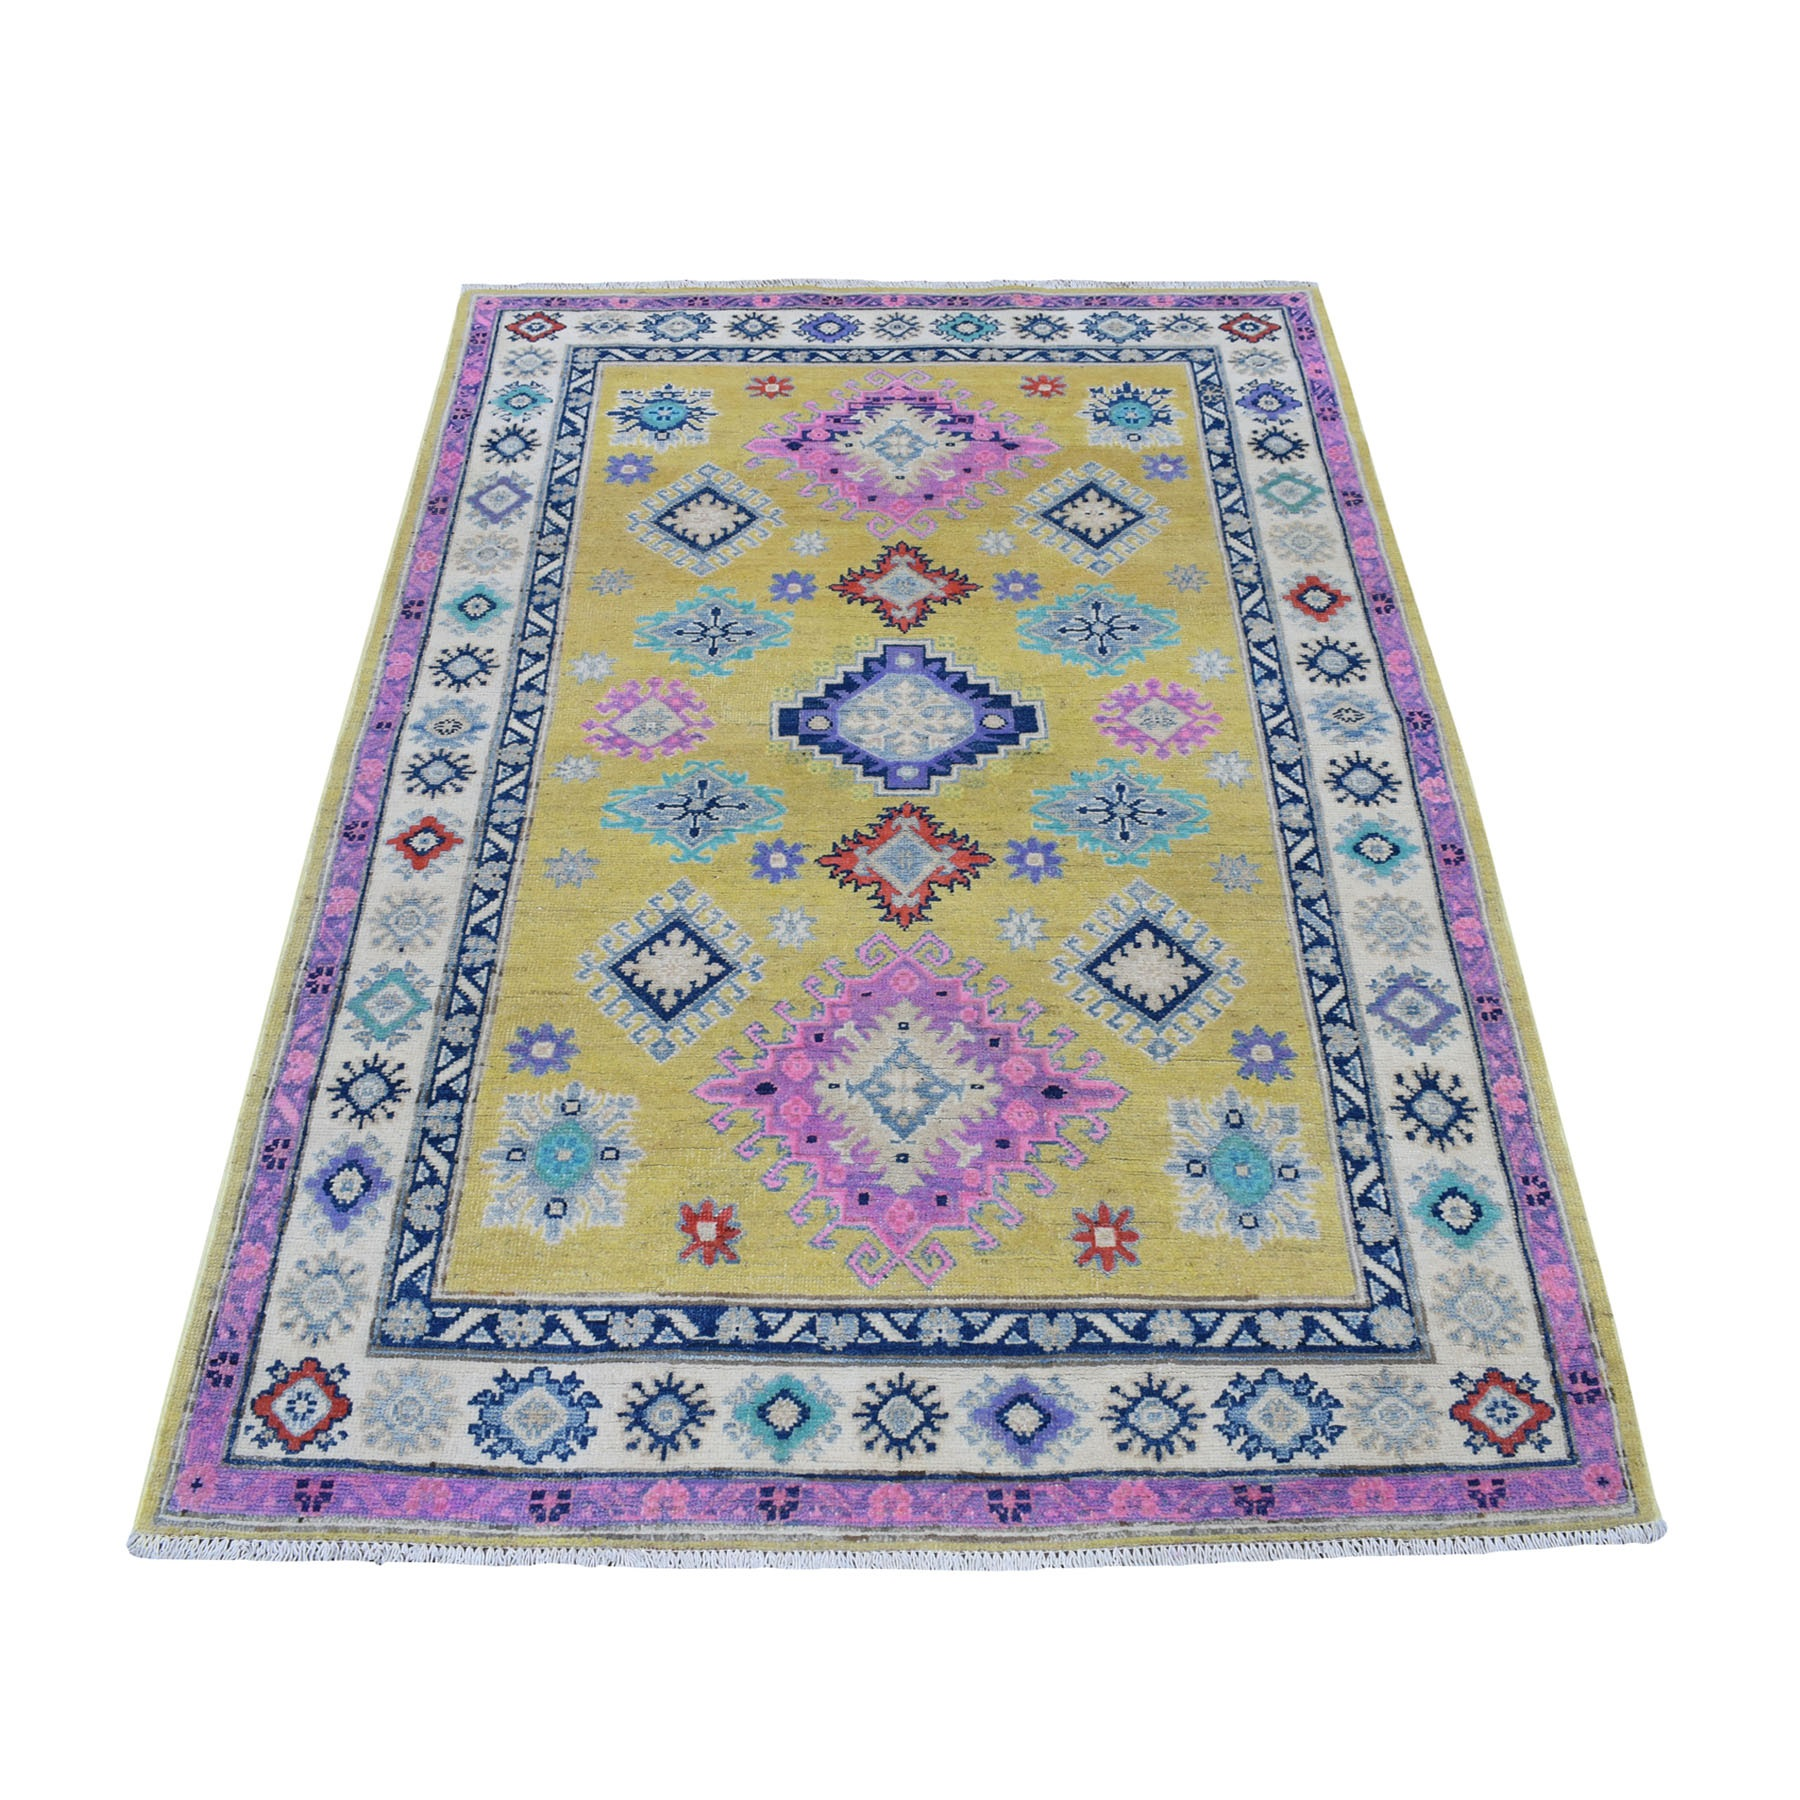 4'x6' Colorful Yellow Fusion Kazak Pure Wool Geometric Design Hand Woven Oriental Rug